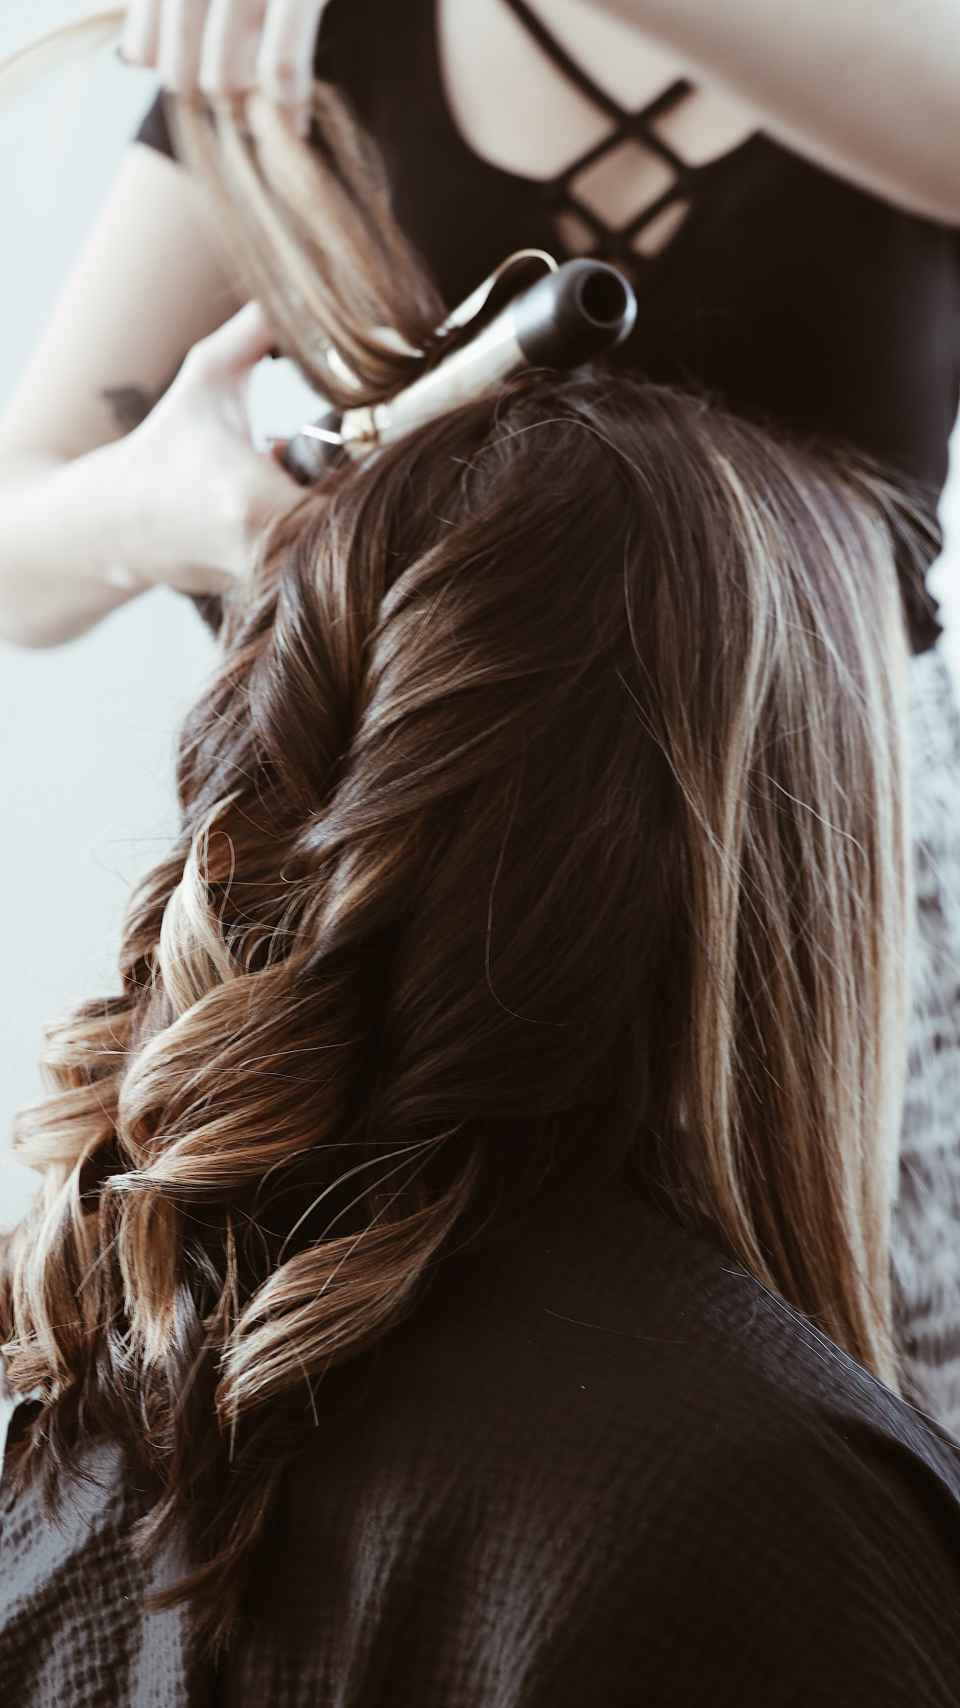 In most weddings, the bride is viewed as someone responsible for paying for the bridesmaids' hair and makeup.